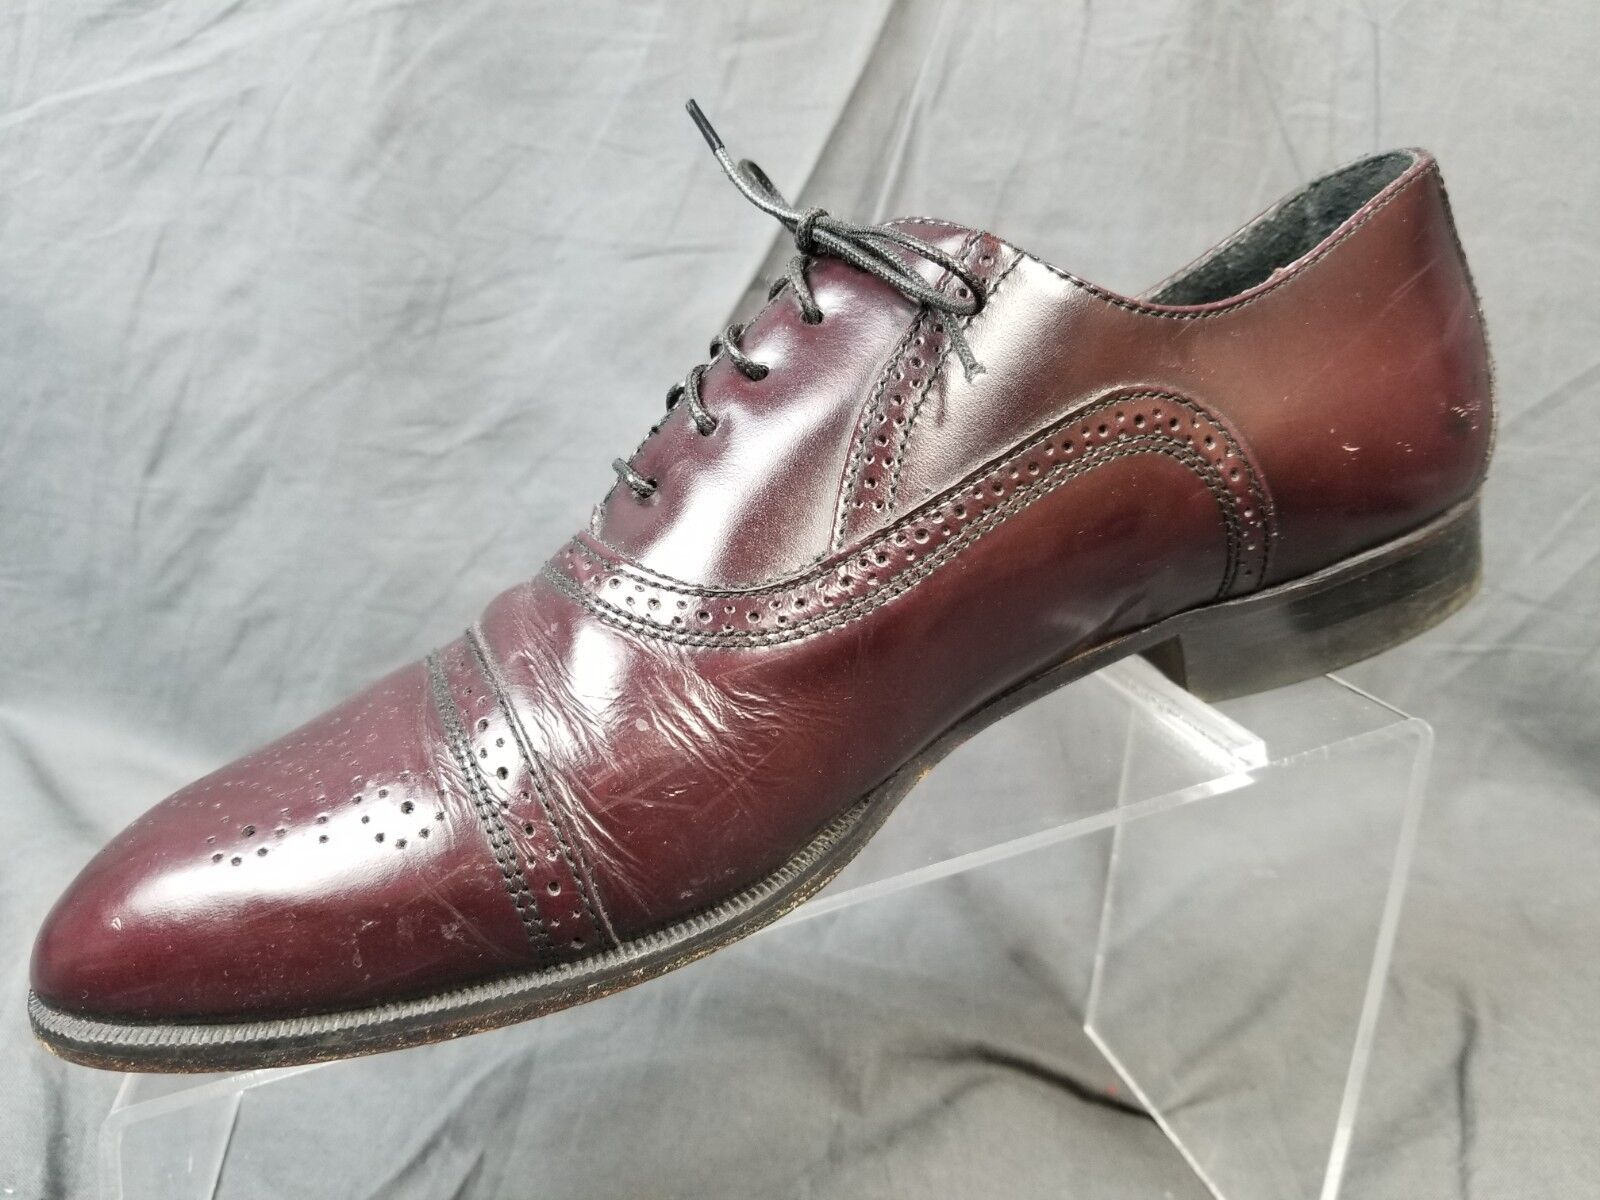 Father & Son Burgundy Leather Brogued Cap Toe Oxford Men's US 9.5D